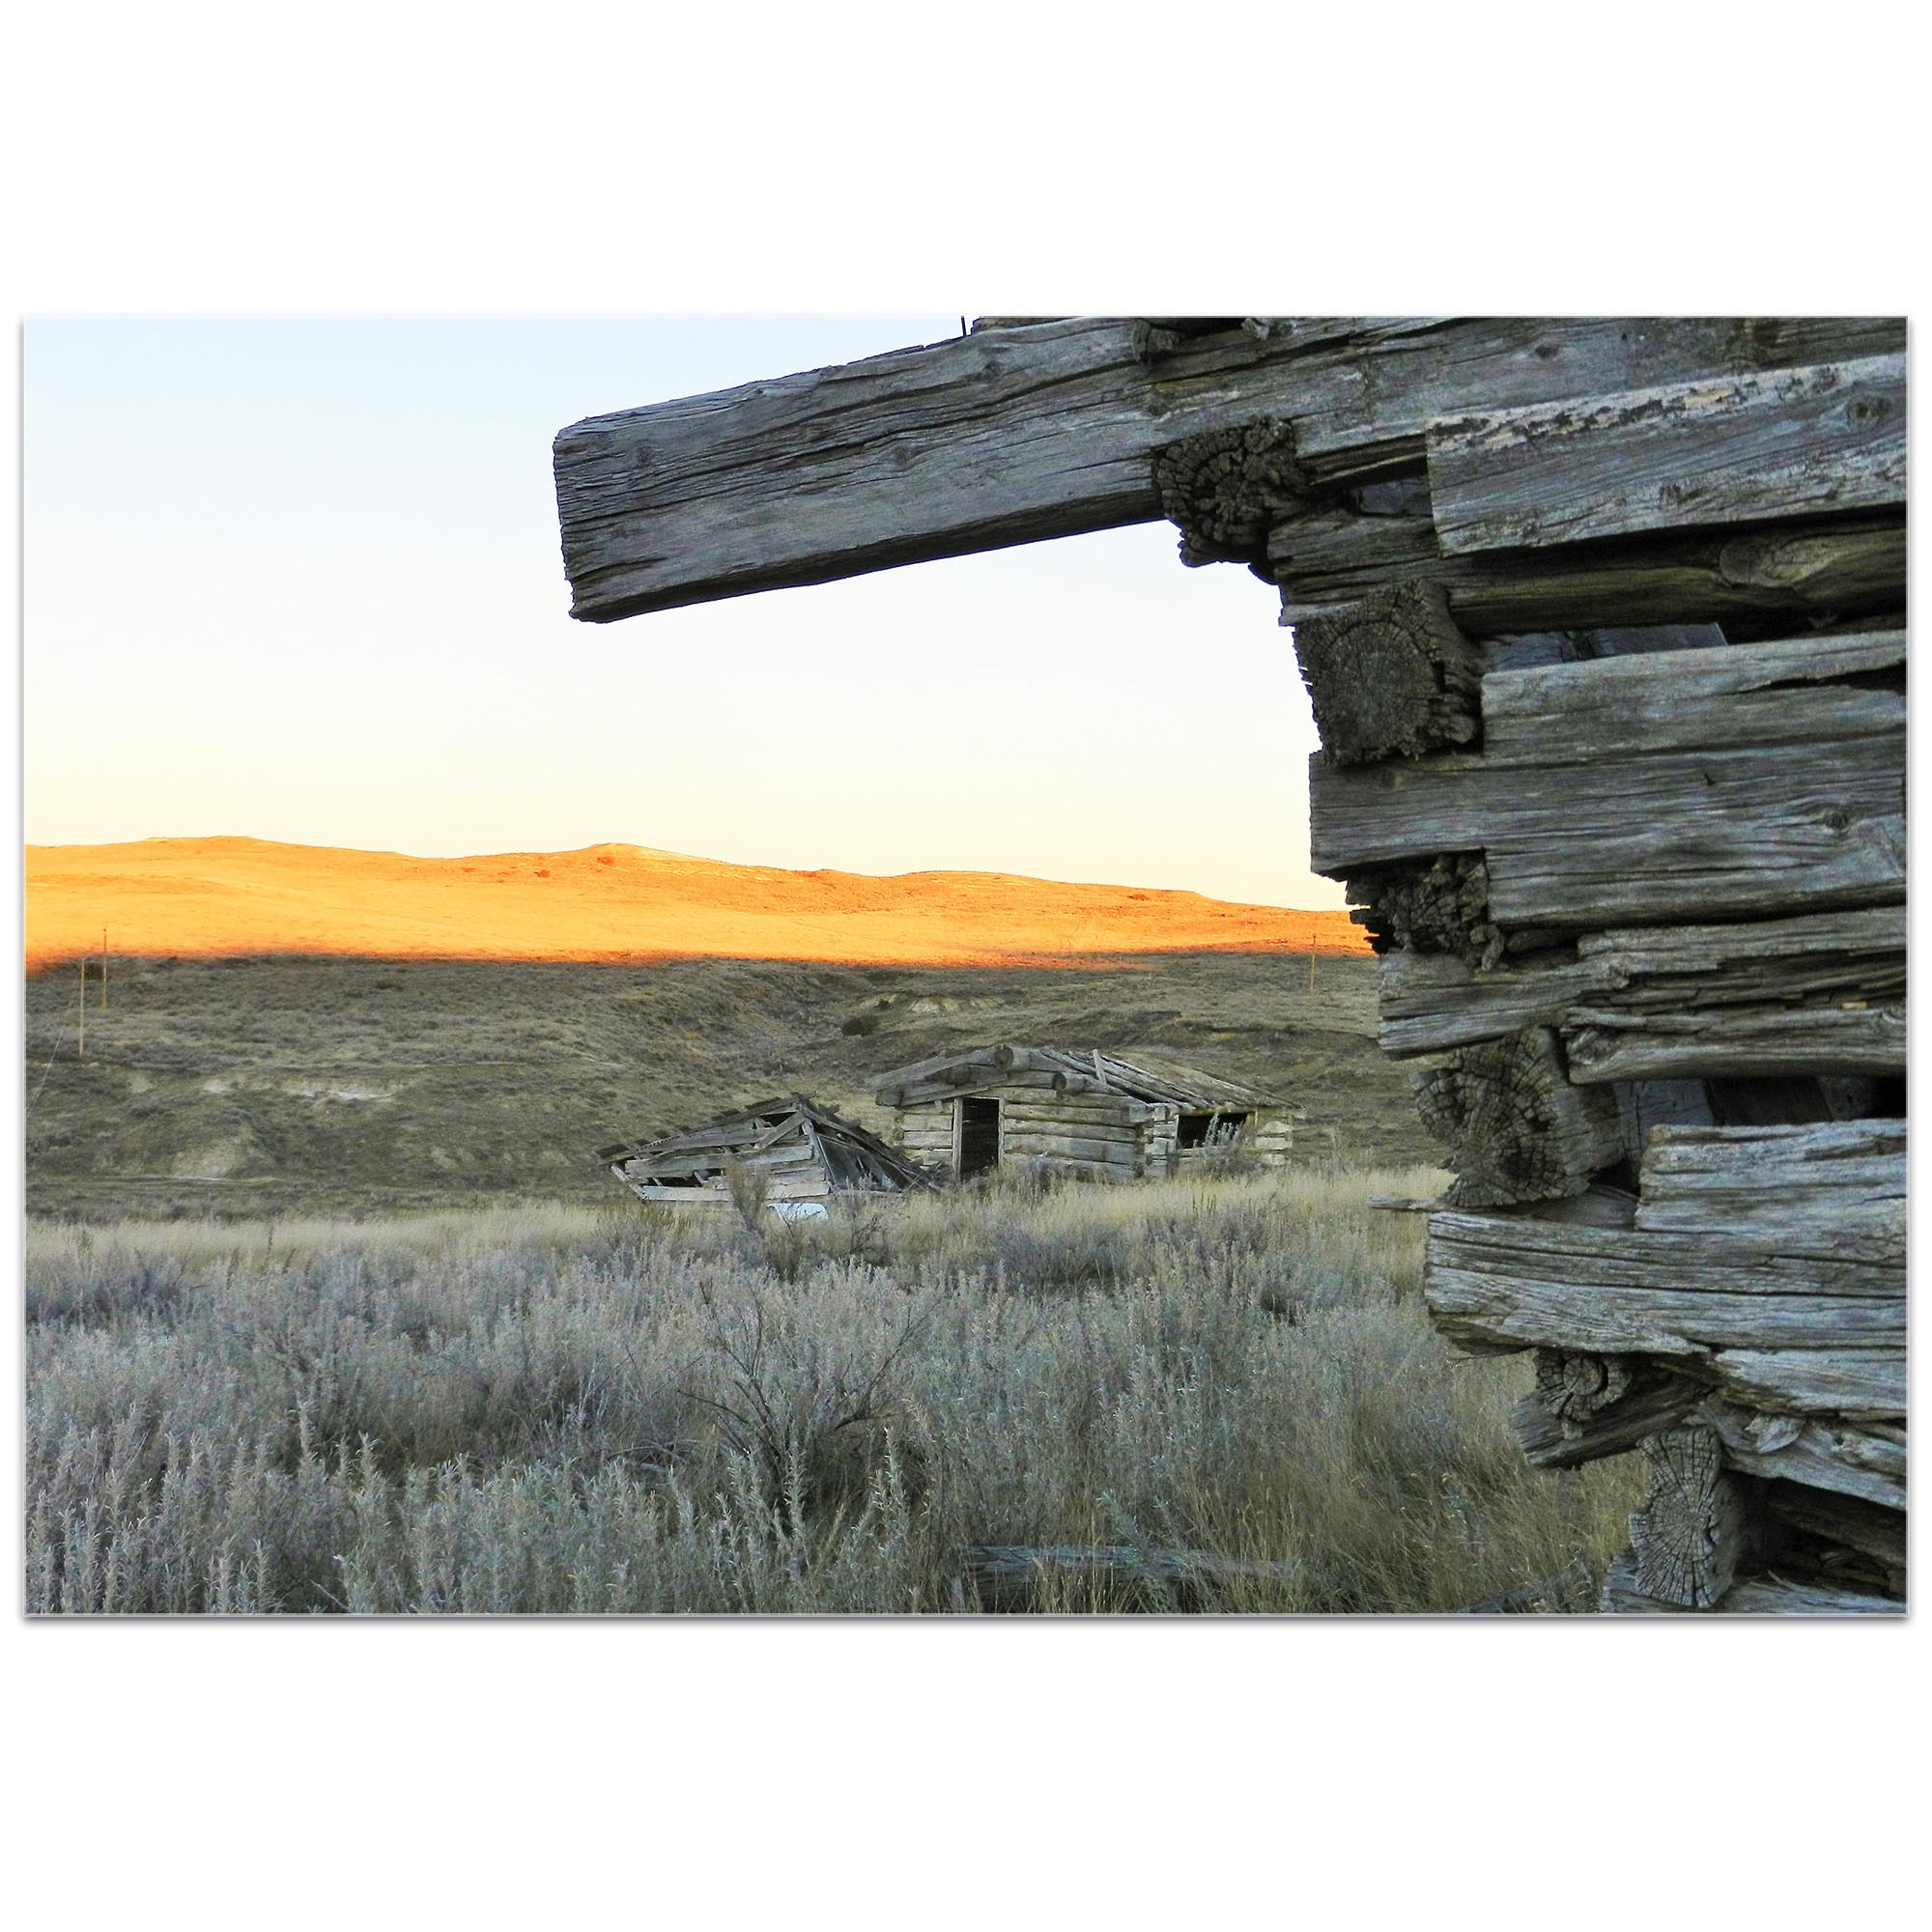 Western Wall Art 'The Corner' - American West Decor on Metal or Plexiglass - Image 2